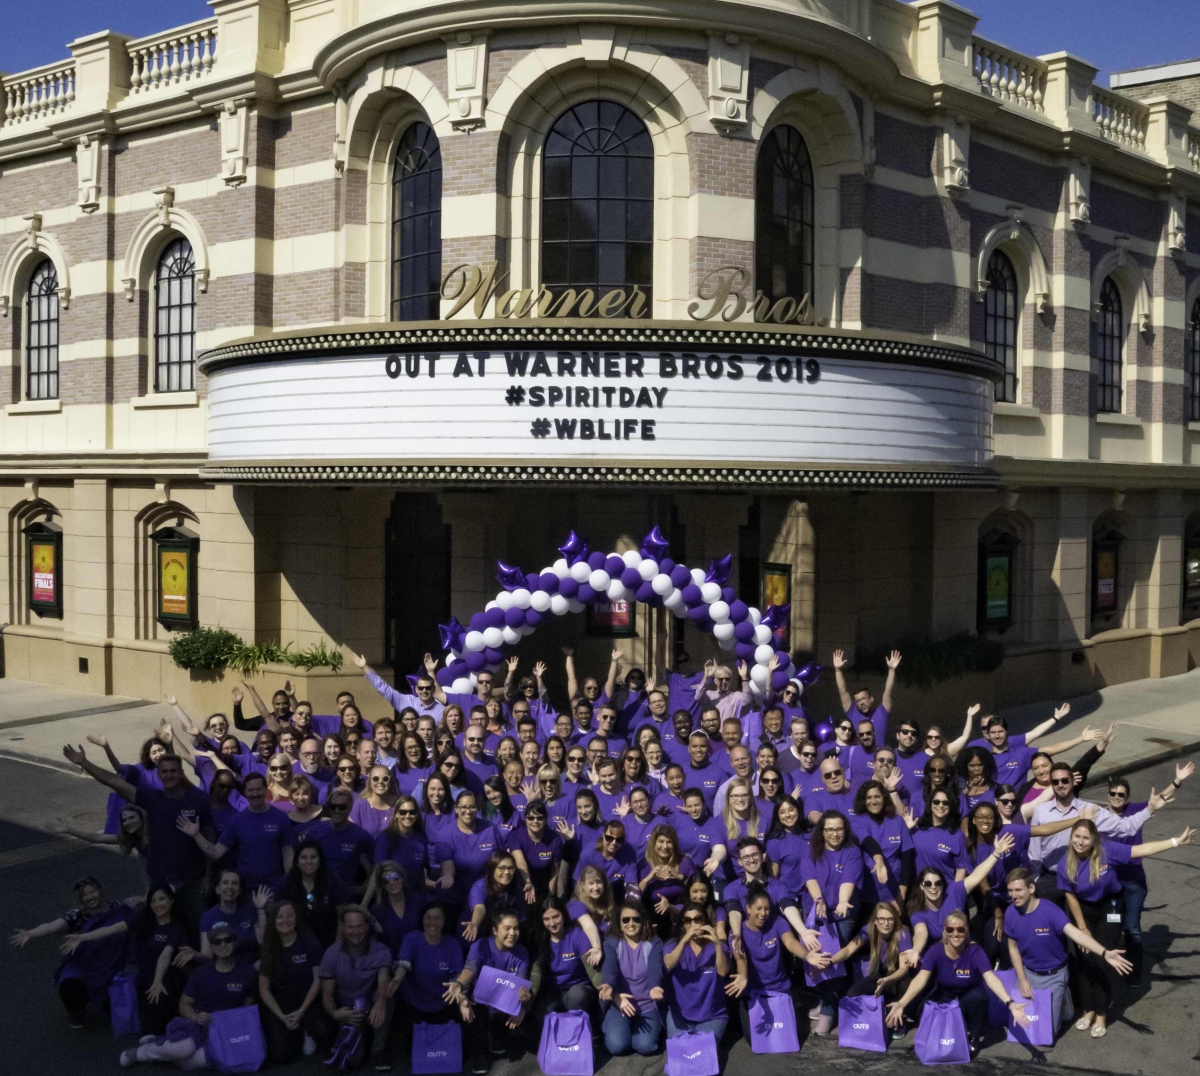 WB lot employees Spirit Day 2019